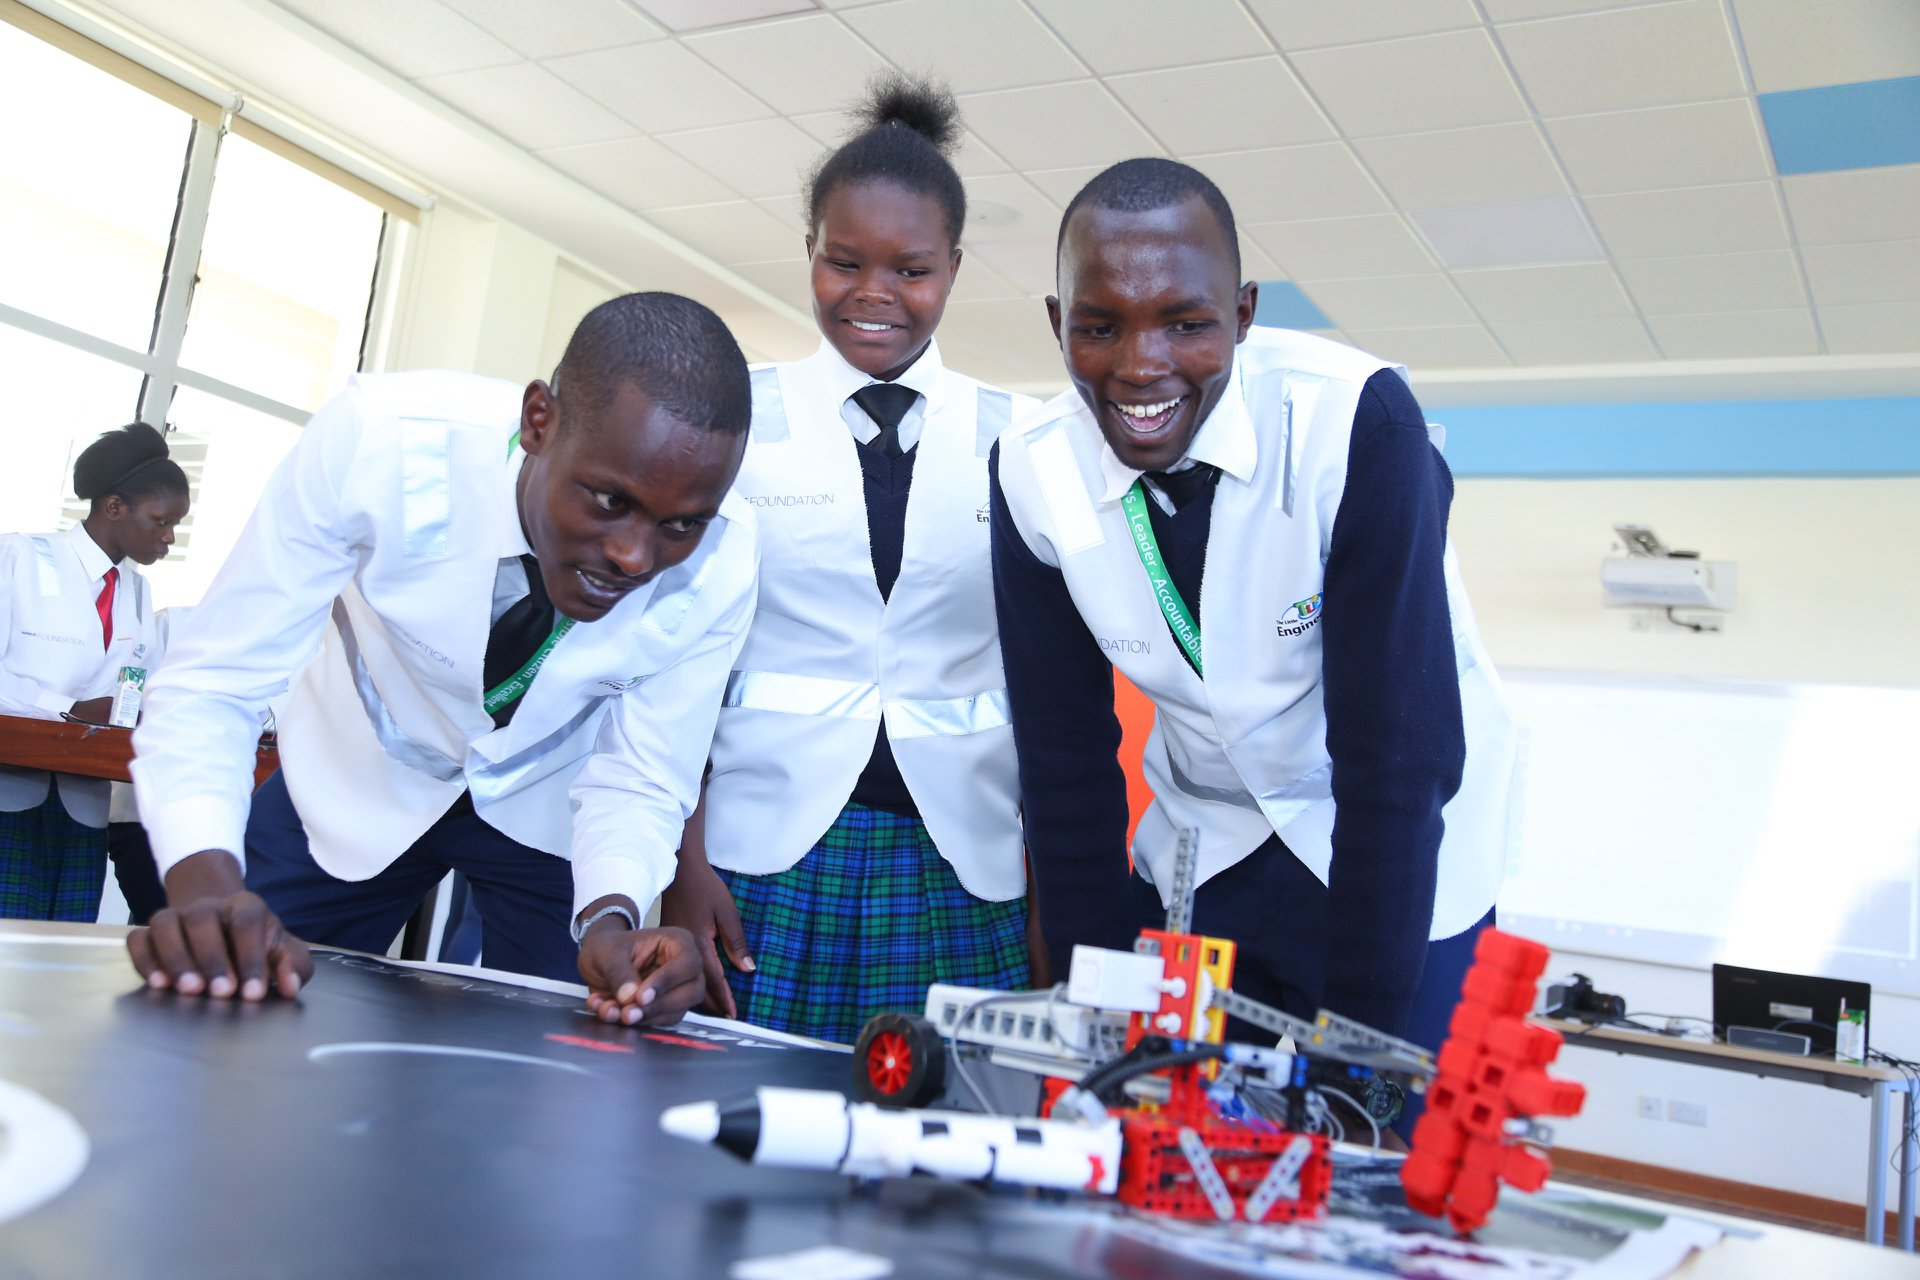 The Launch of the Airbus Little Engineer Initiative at M-Pesa Foundation Academy